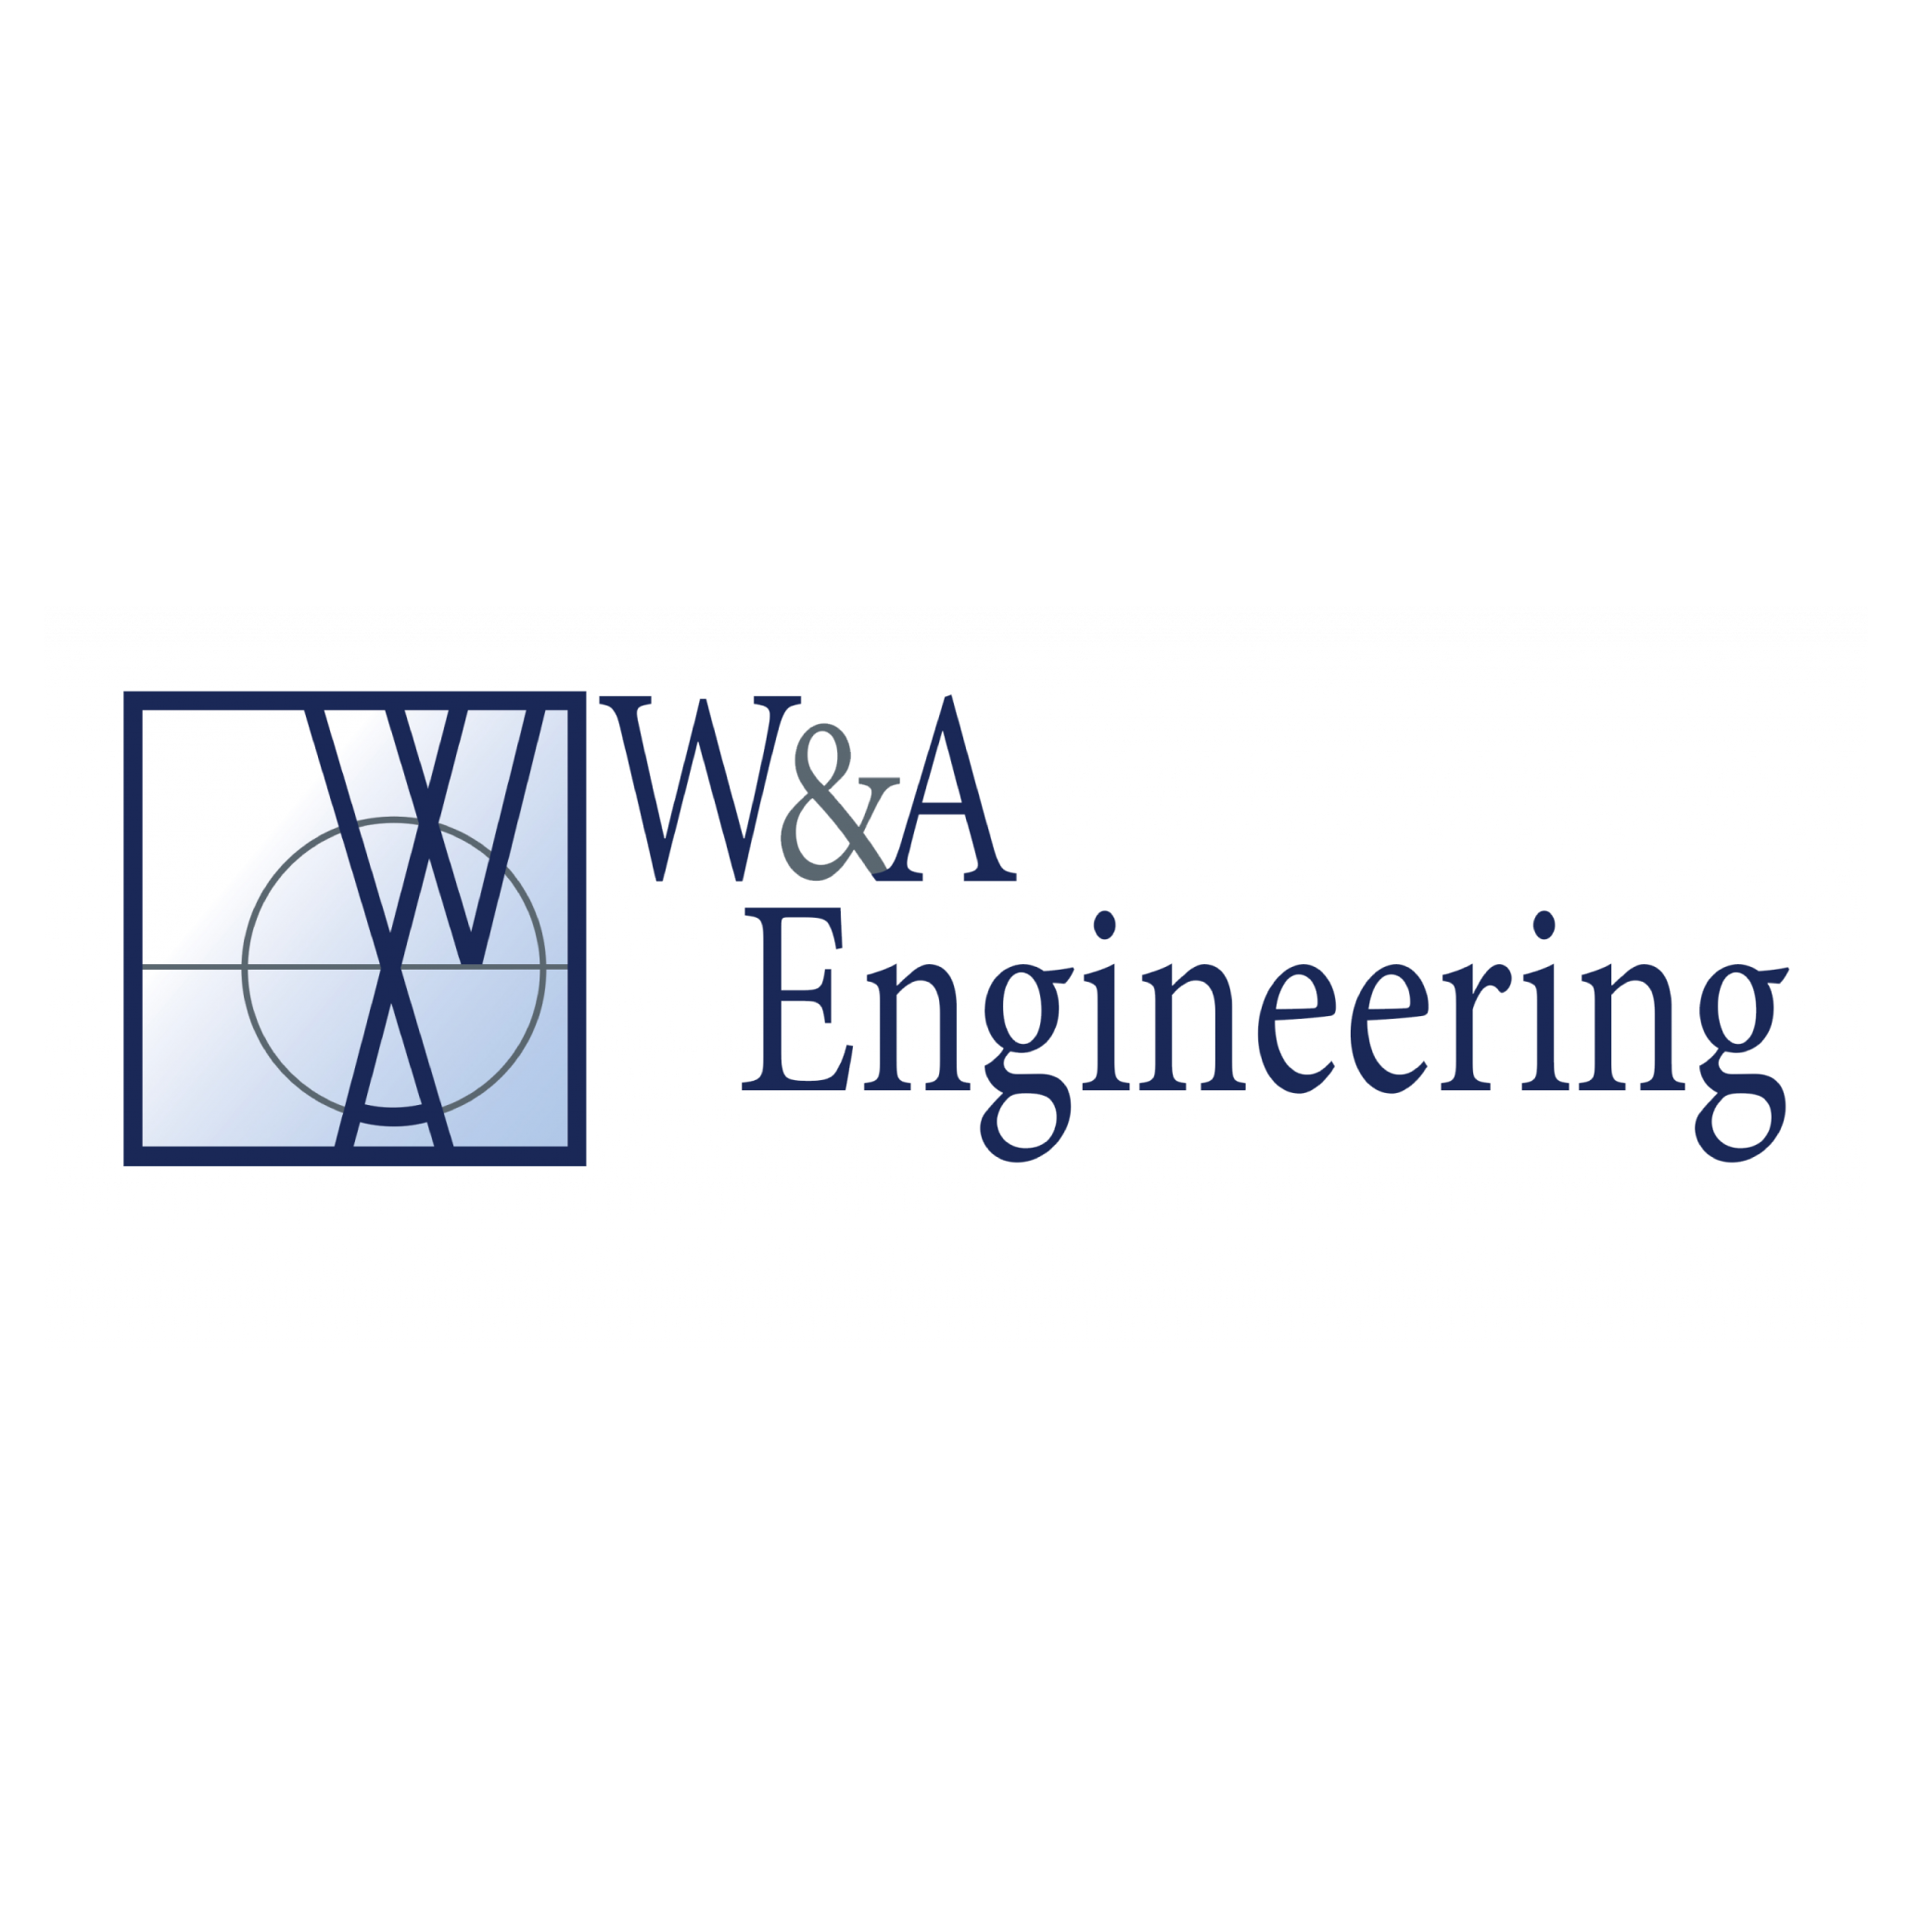 W&A Engineering Logo